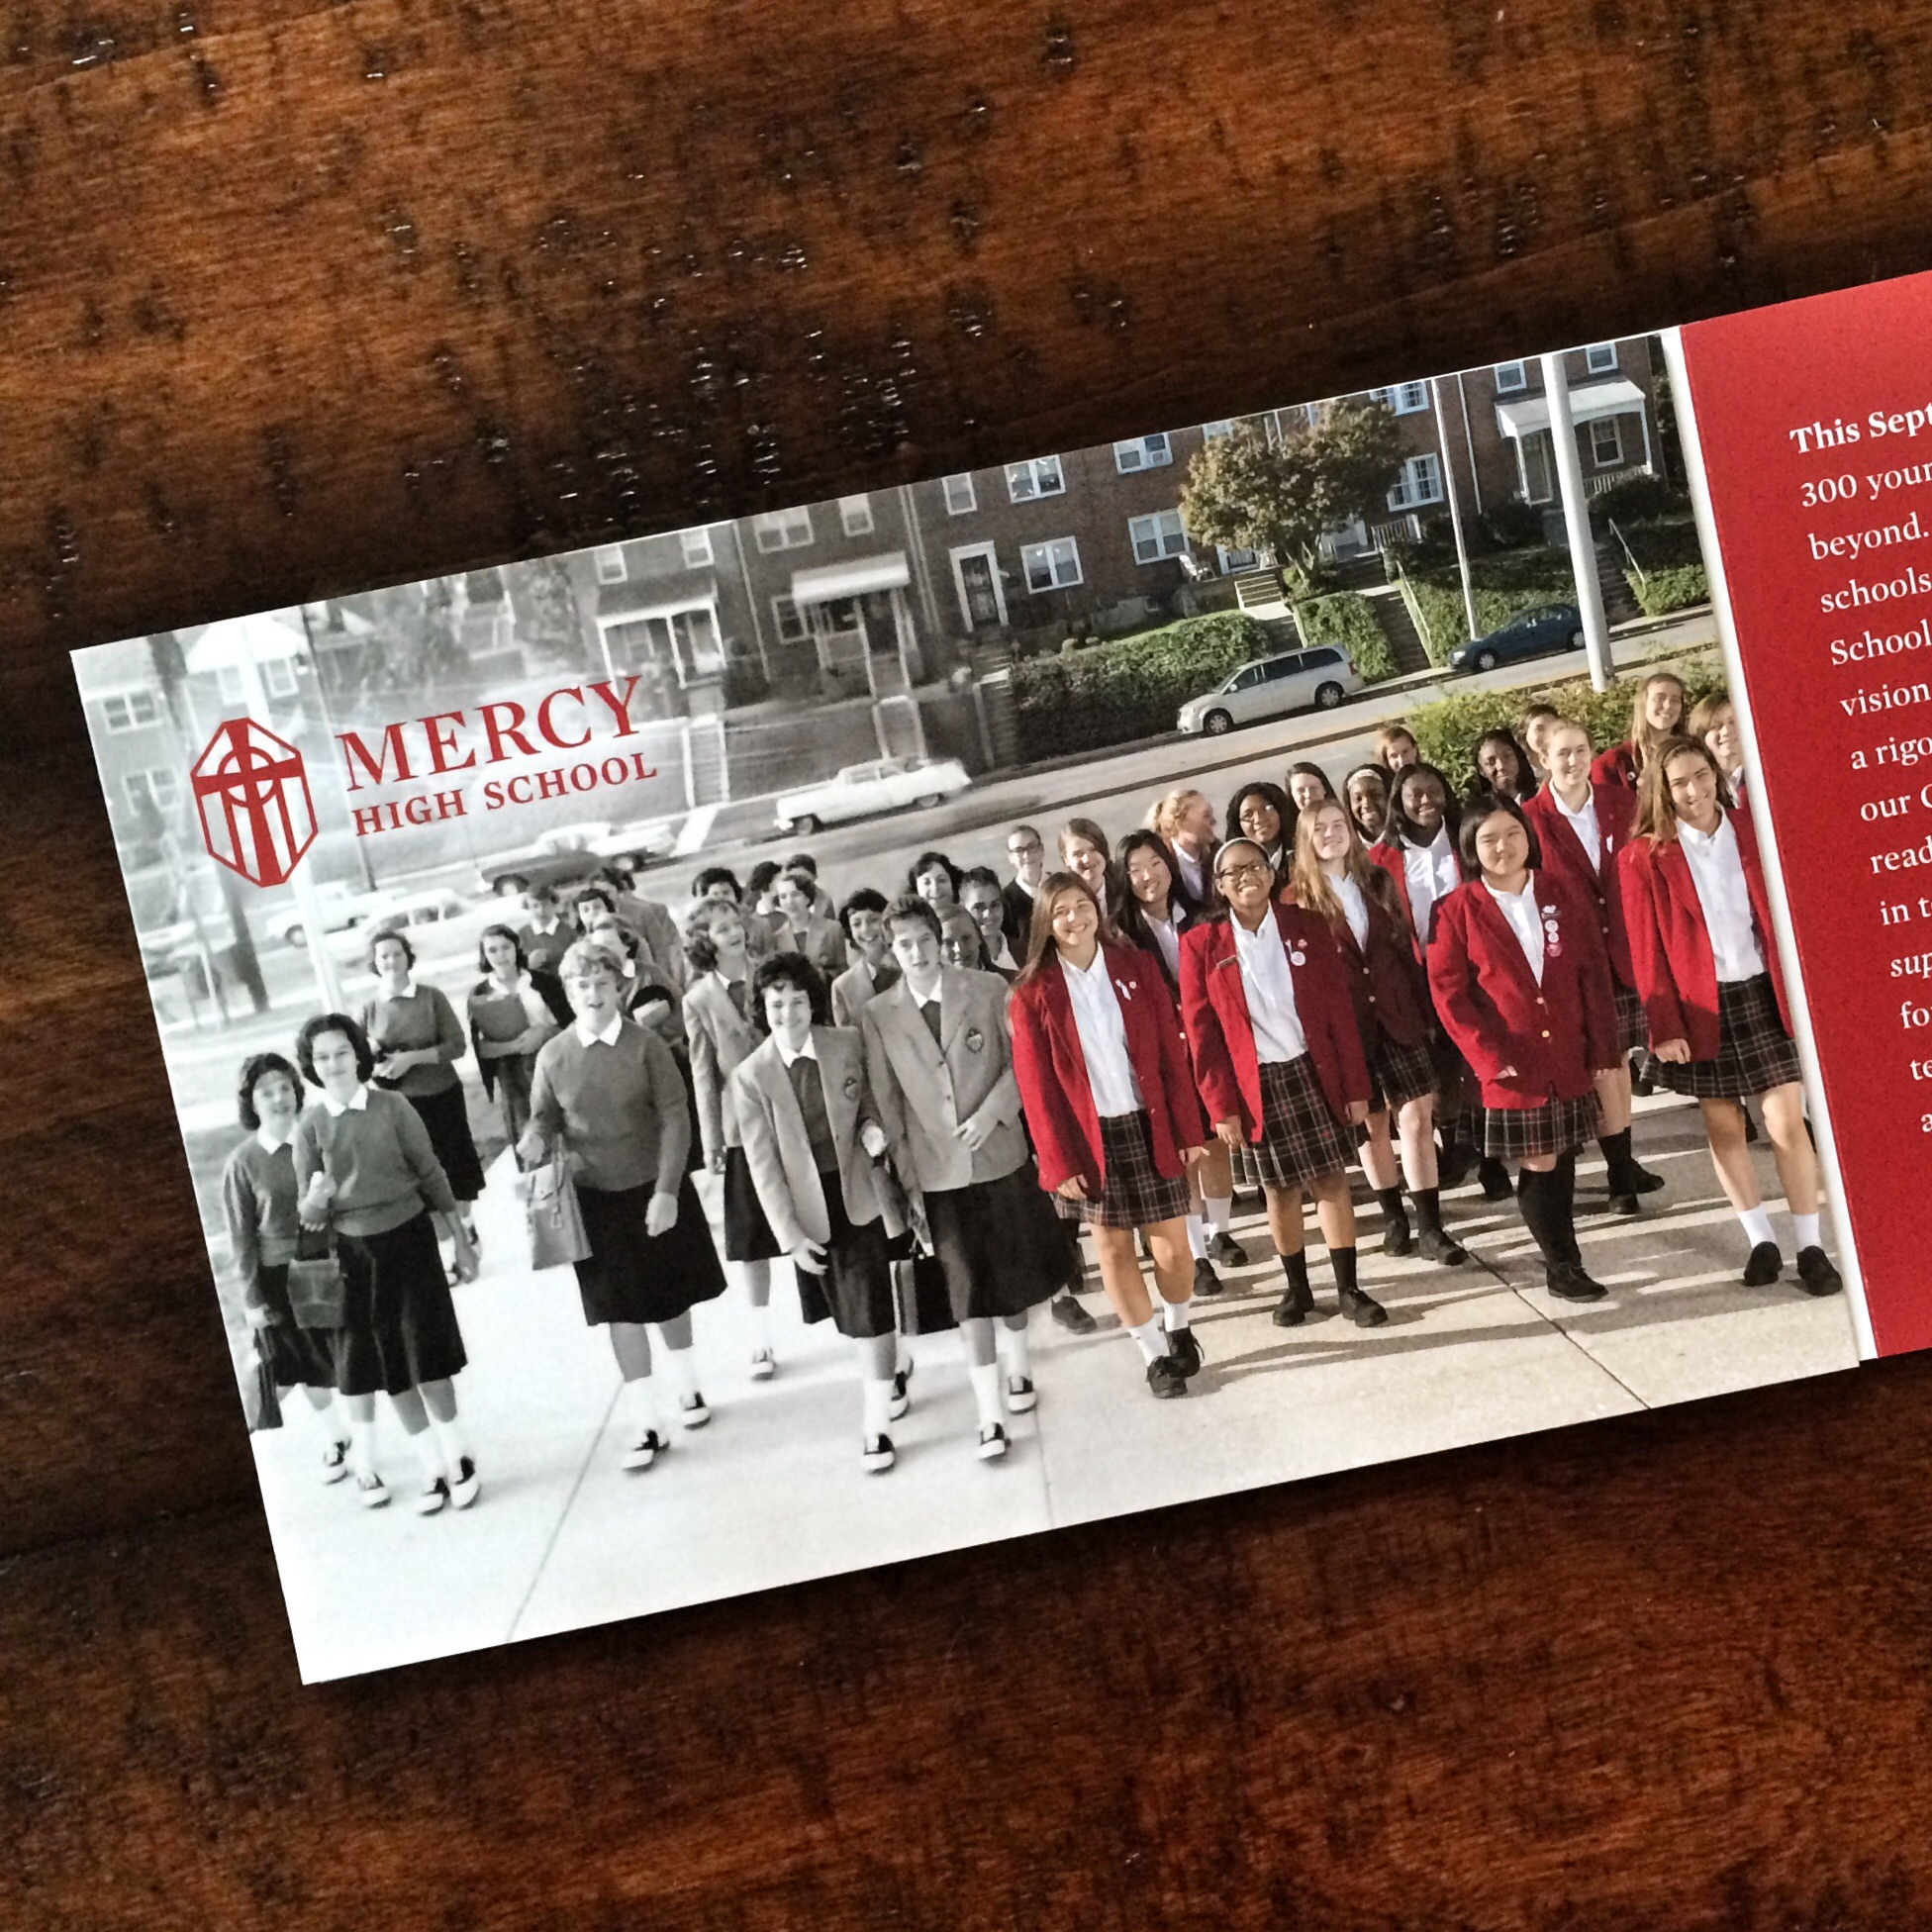 A close-up view of the most recent development brochure, which includes this great photo transition of students from 1960 and 2016. The girls were great sports for nearly an hour as I lined them up to match the archival photo. The photographer is the talented Howard Korn, and the photoshop work was all done here at Hatcher Design Office.